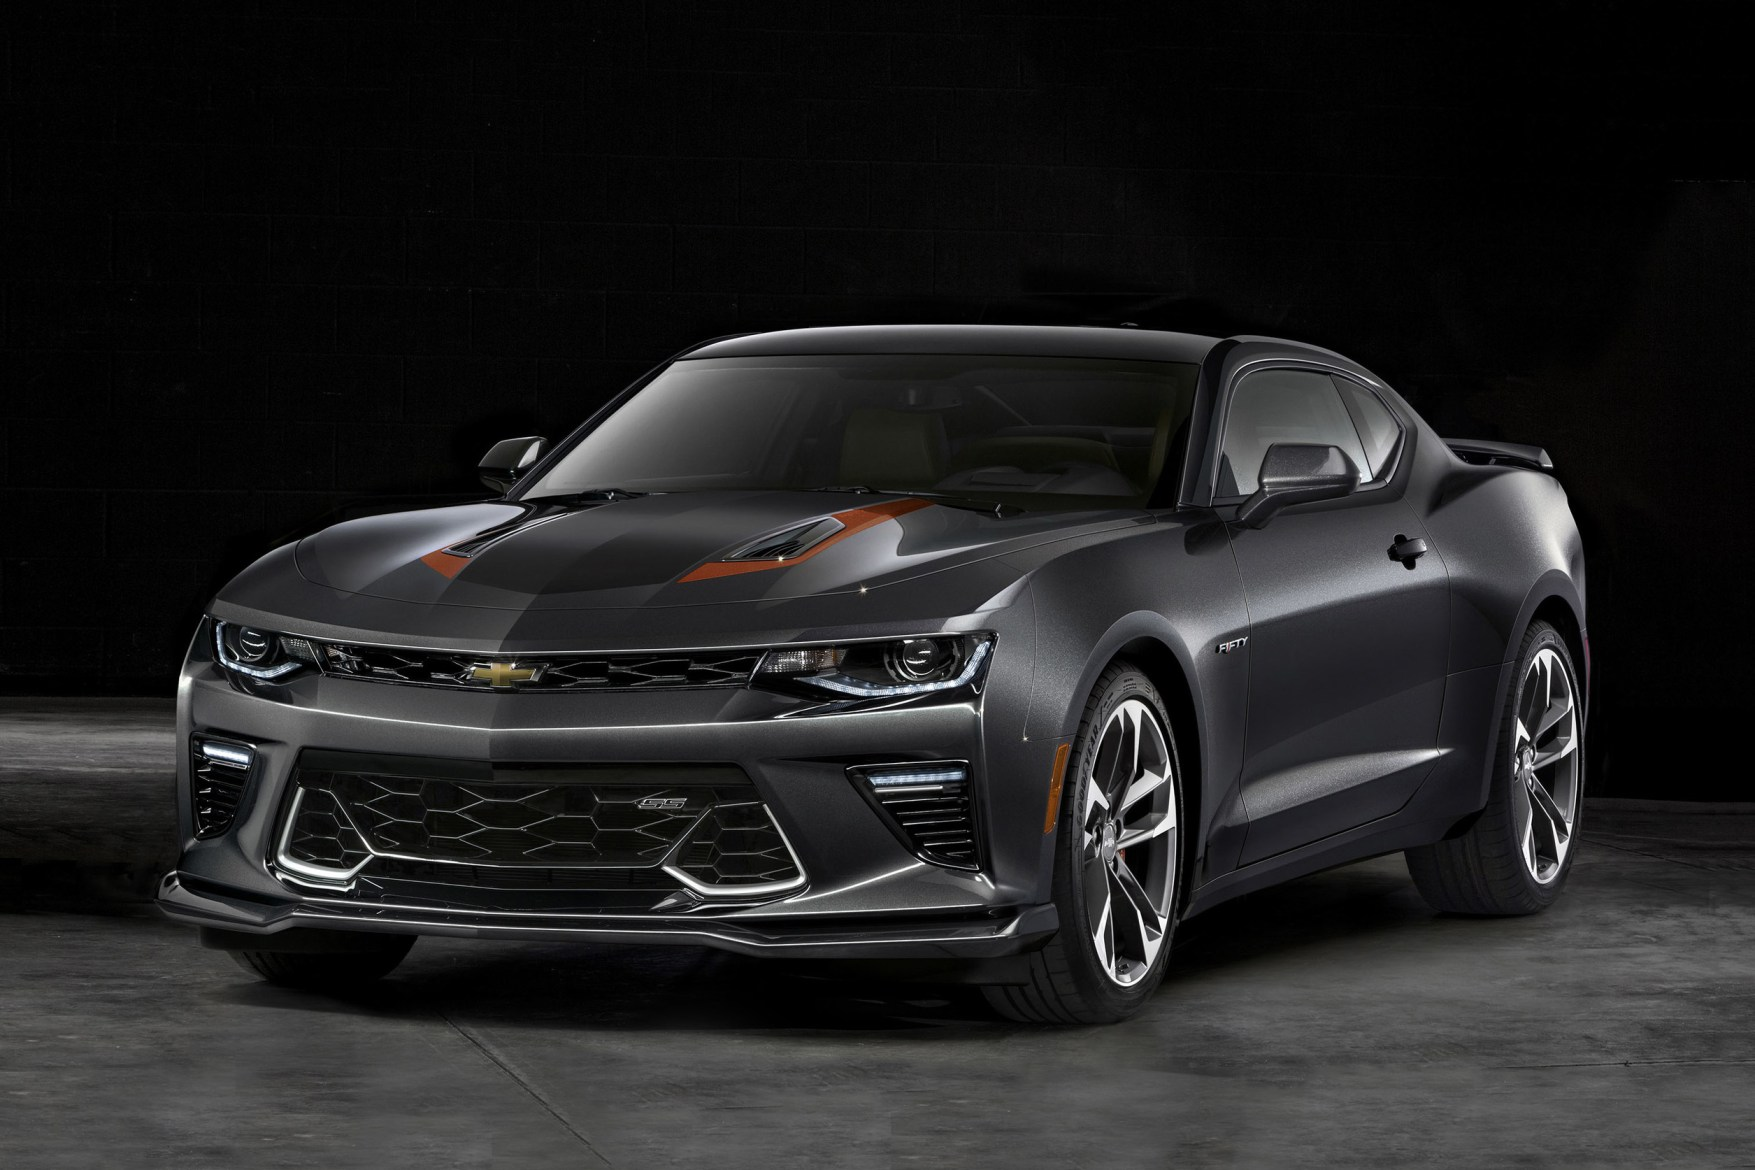 2017 chevrolet camaro 50th anniversary car hypebeast. Black Bedroom Furniture Sets. Home Design Ideas